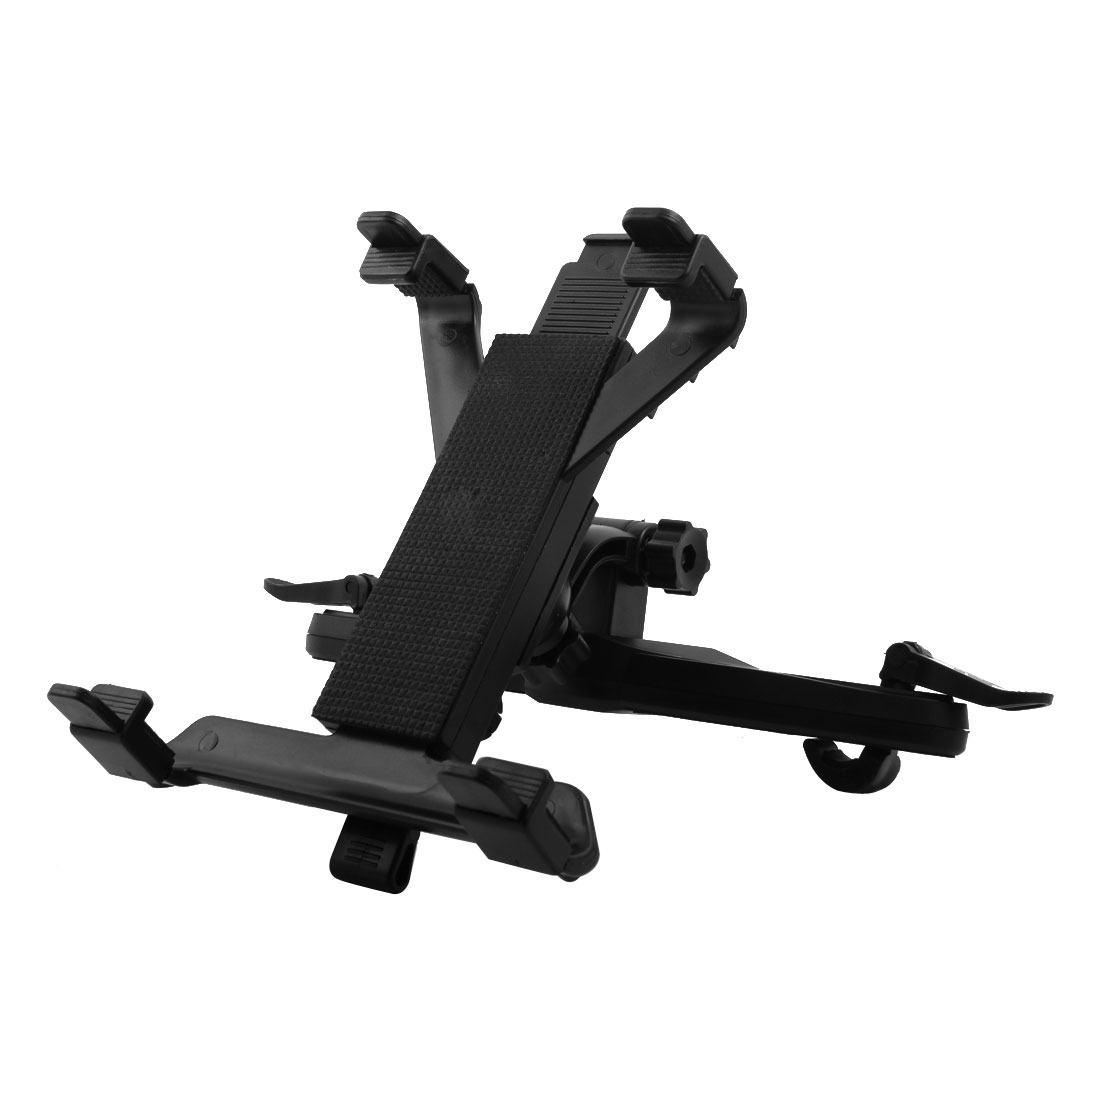 Tablet PC Universal Car Headrest Holder Mount Stand Cradle Clip Bracket Black